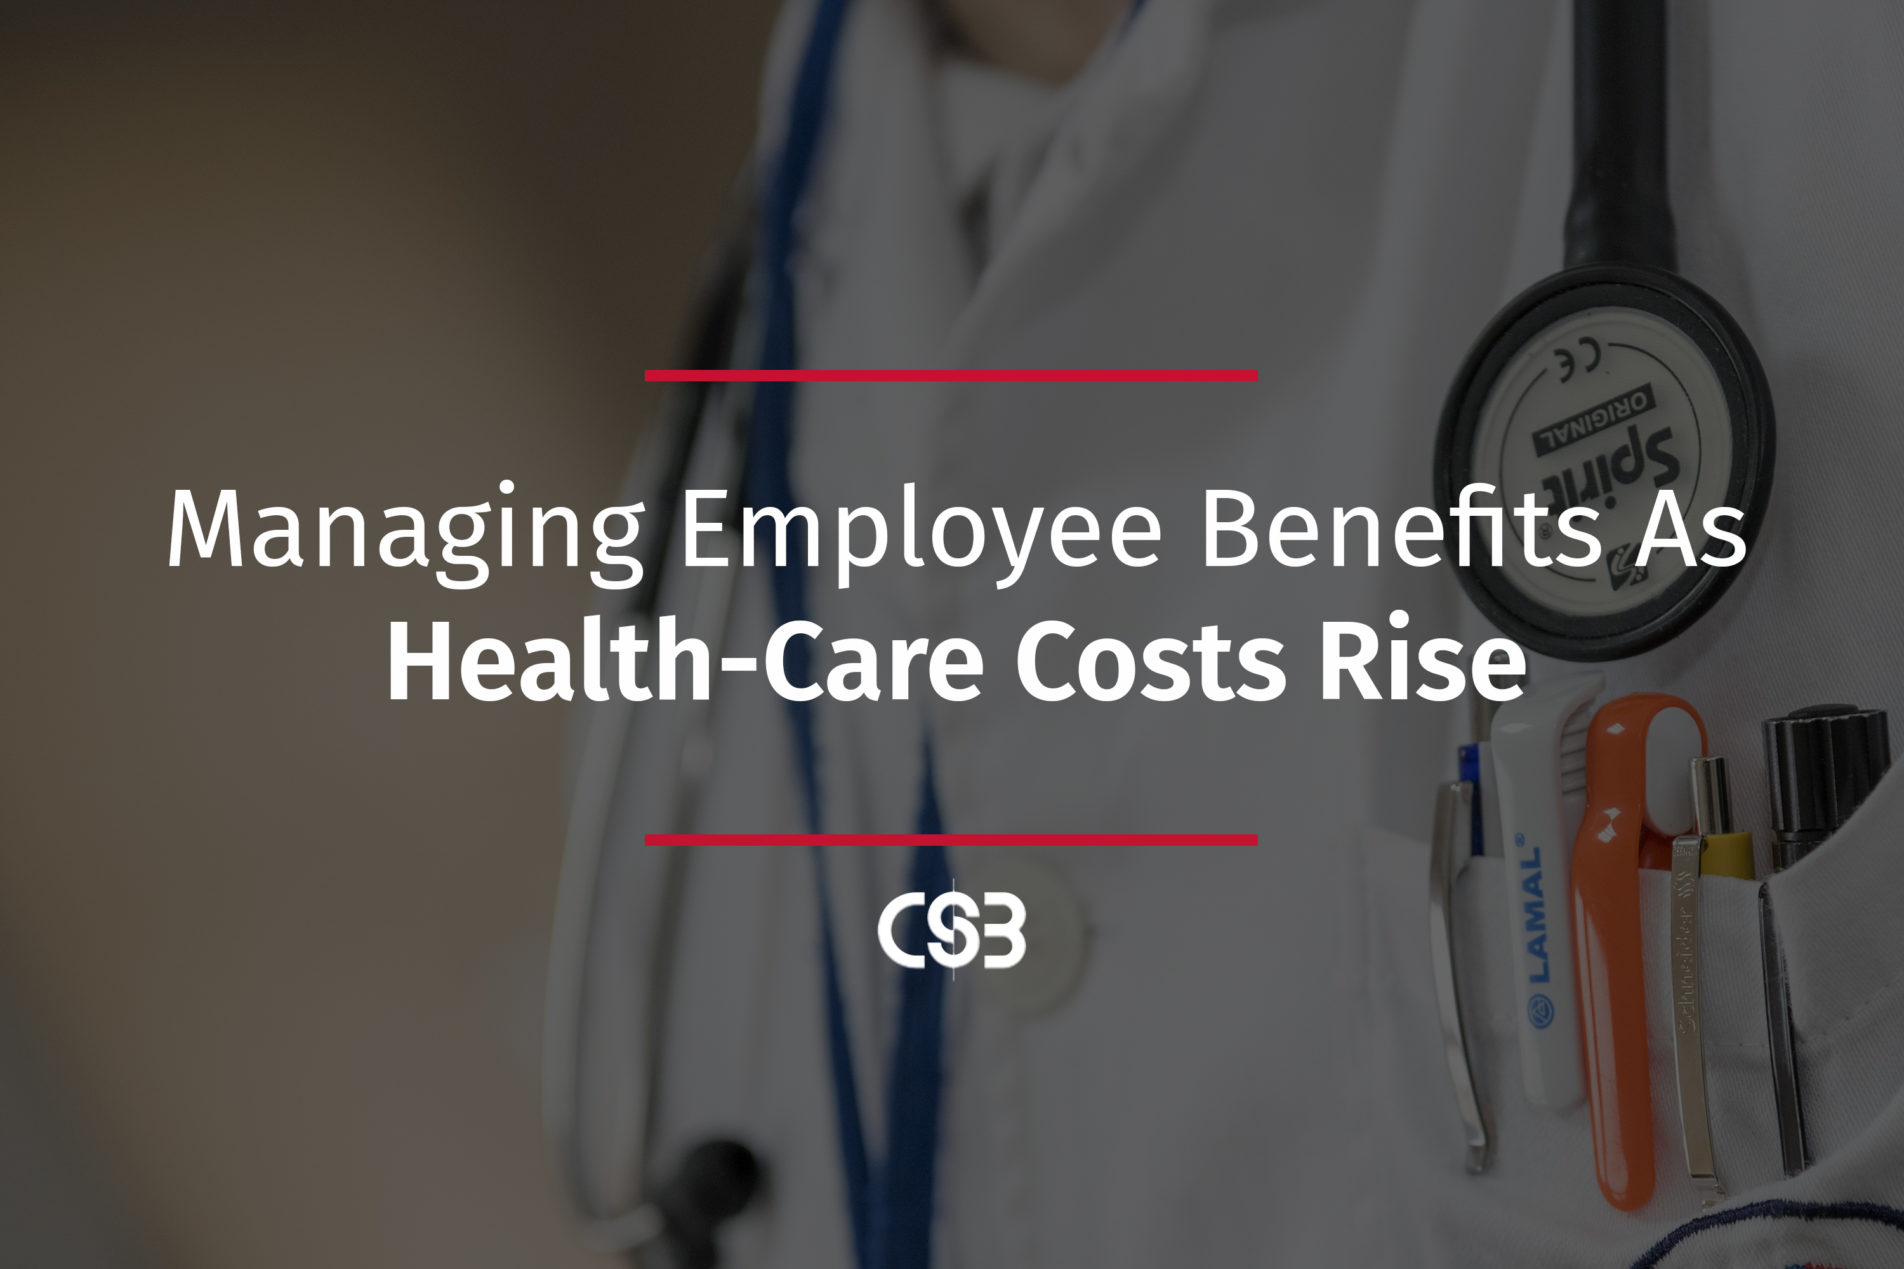 Managing employee benefits as health-care costs rise